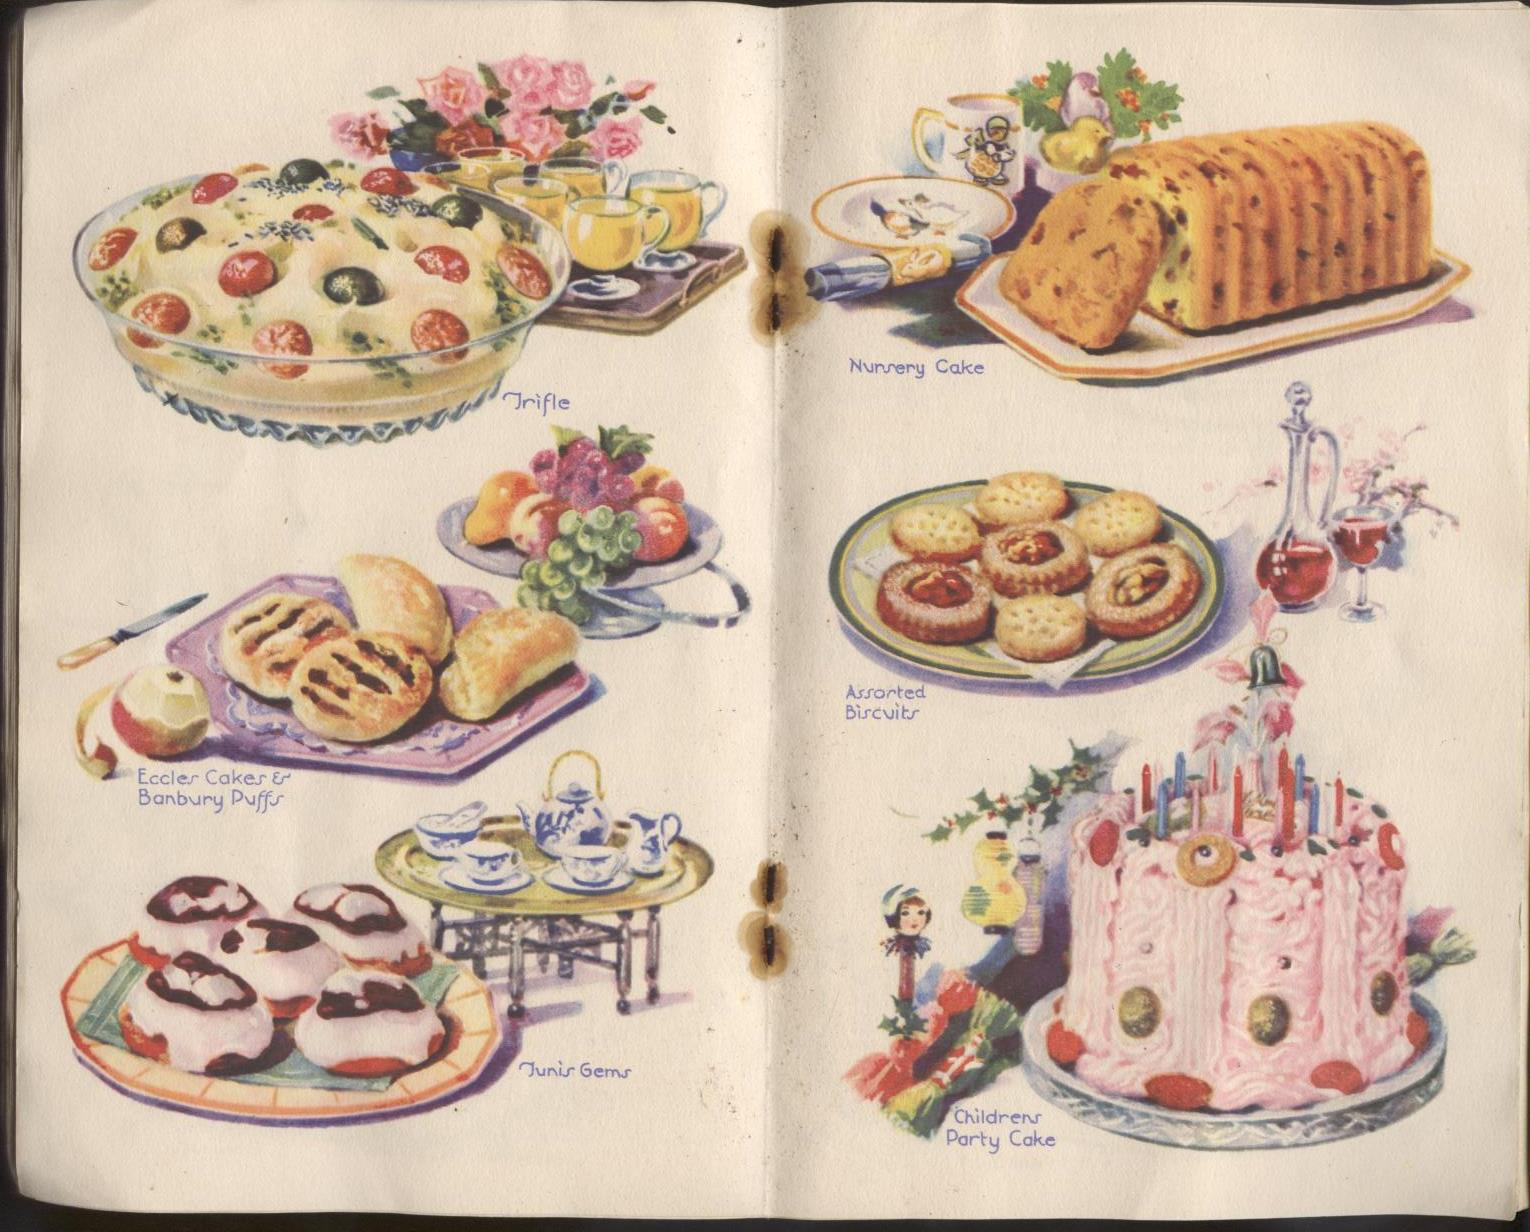 a collection of classic desserts from a vintage recipe book.